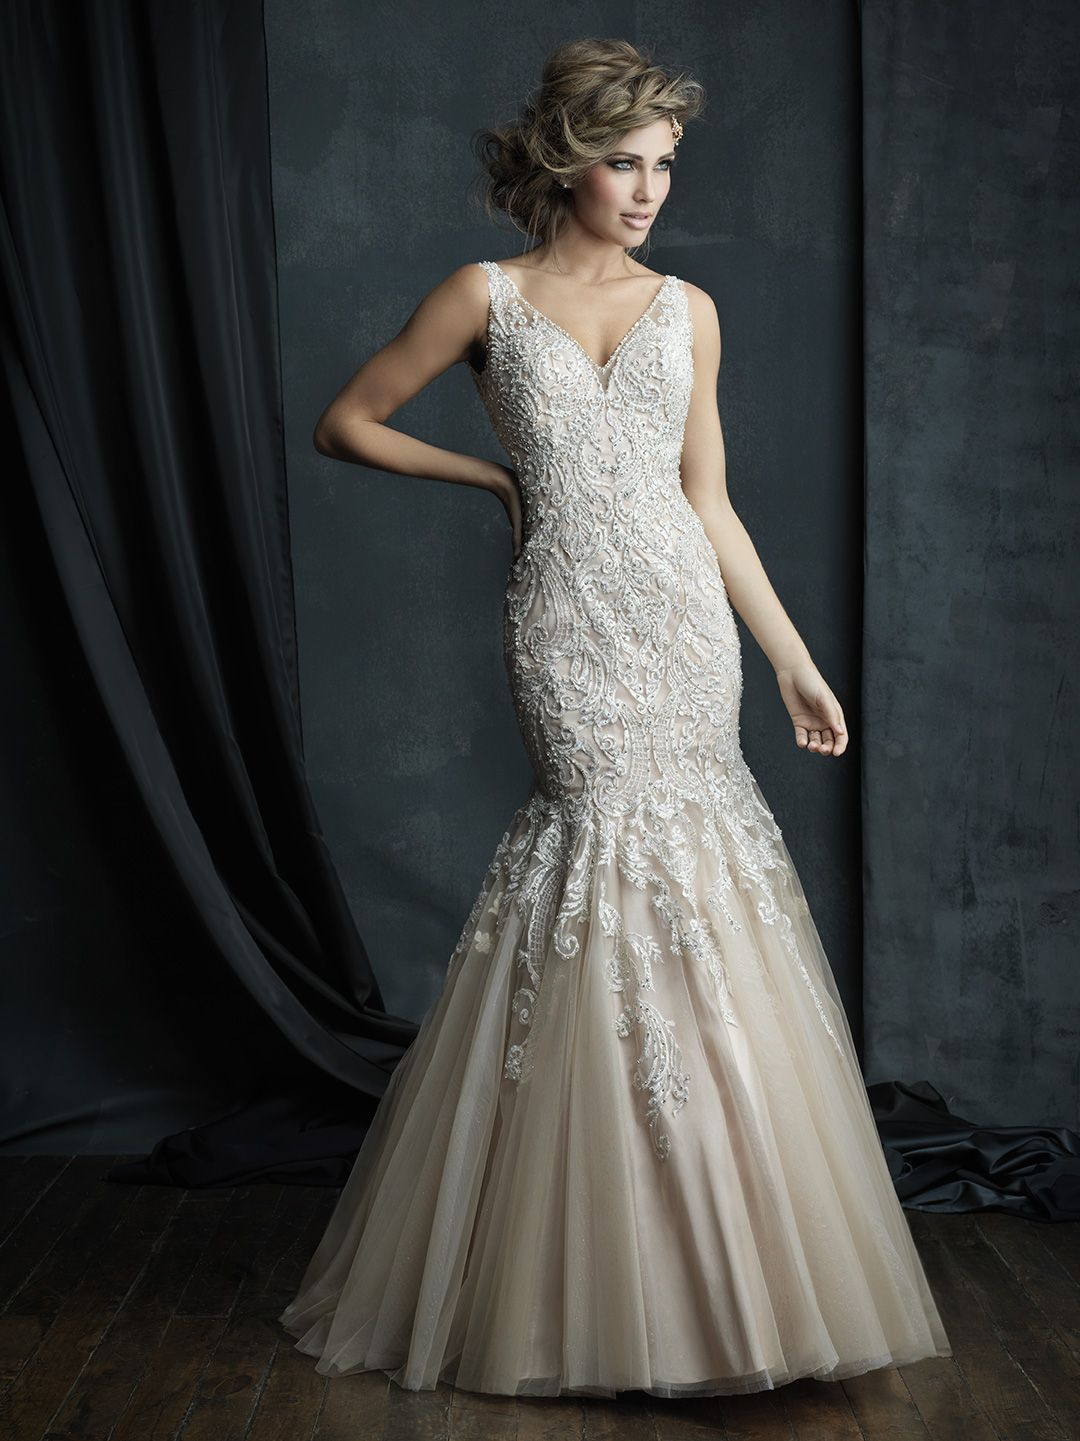 Elite wedding dresses  Channel the opulent glamour of the s in this magnificent